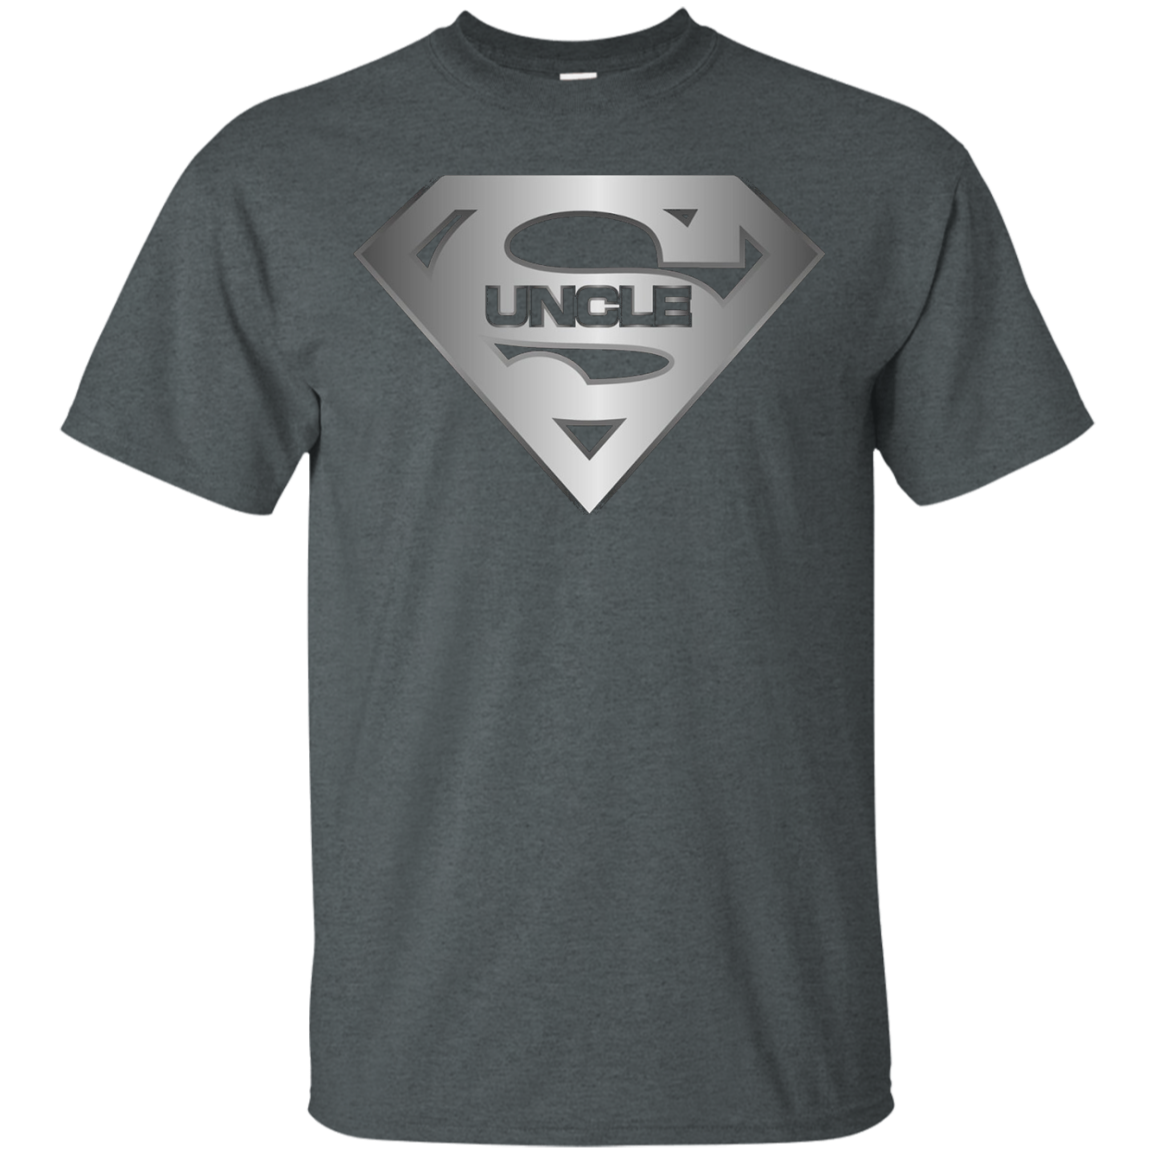 Men's Super Uncle T-Shirt is the Best Tee Shirt From Niece Nephew